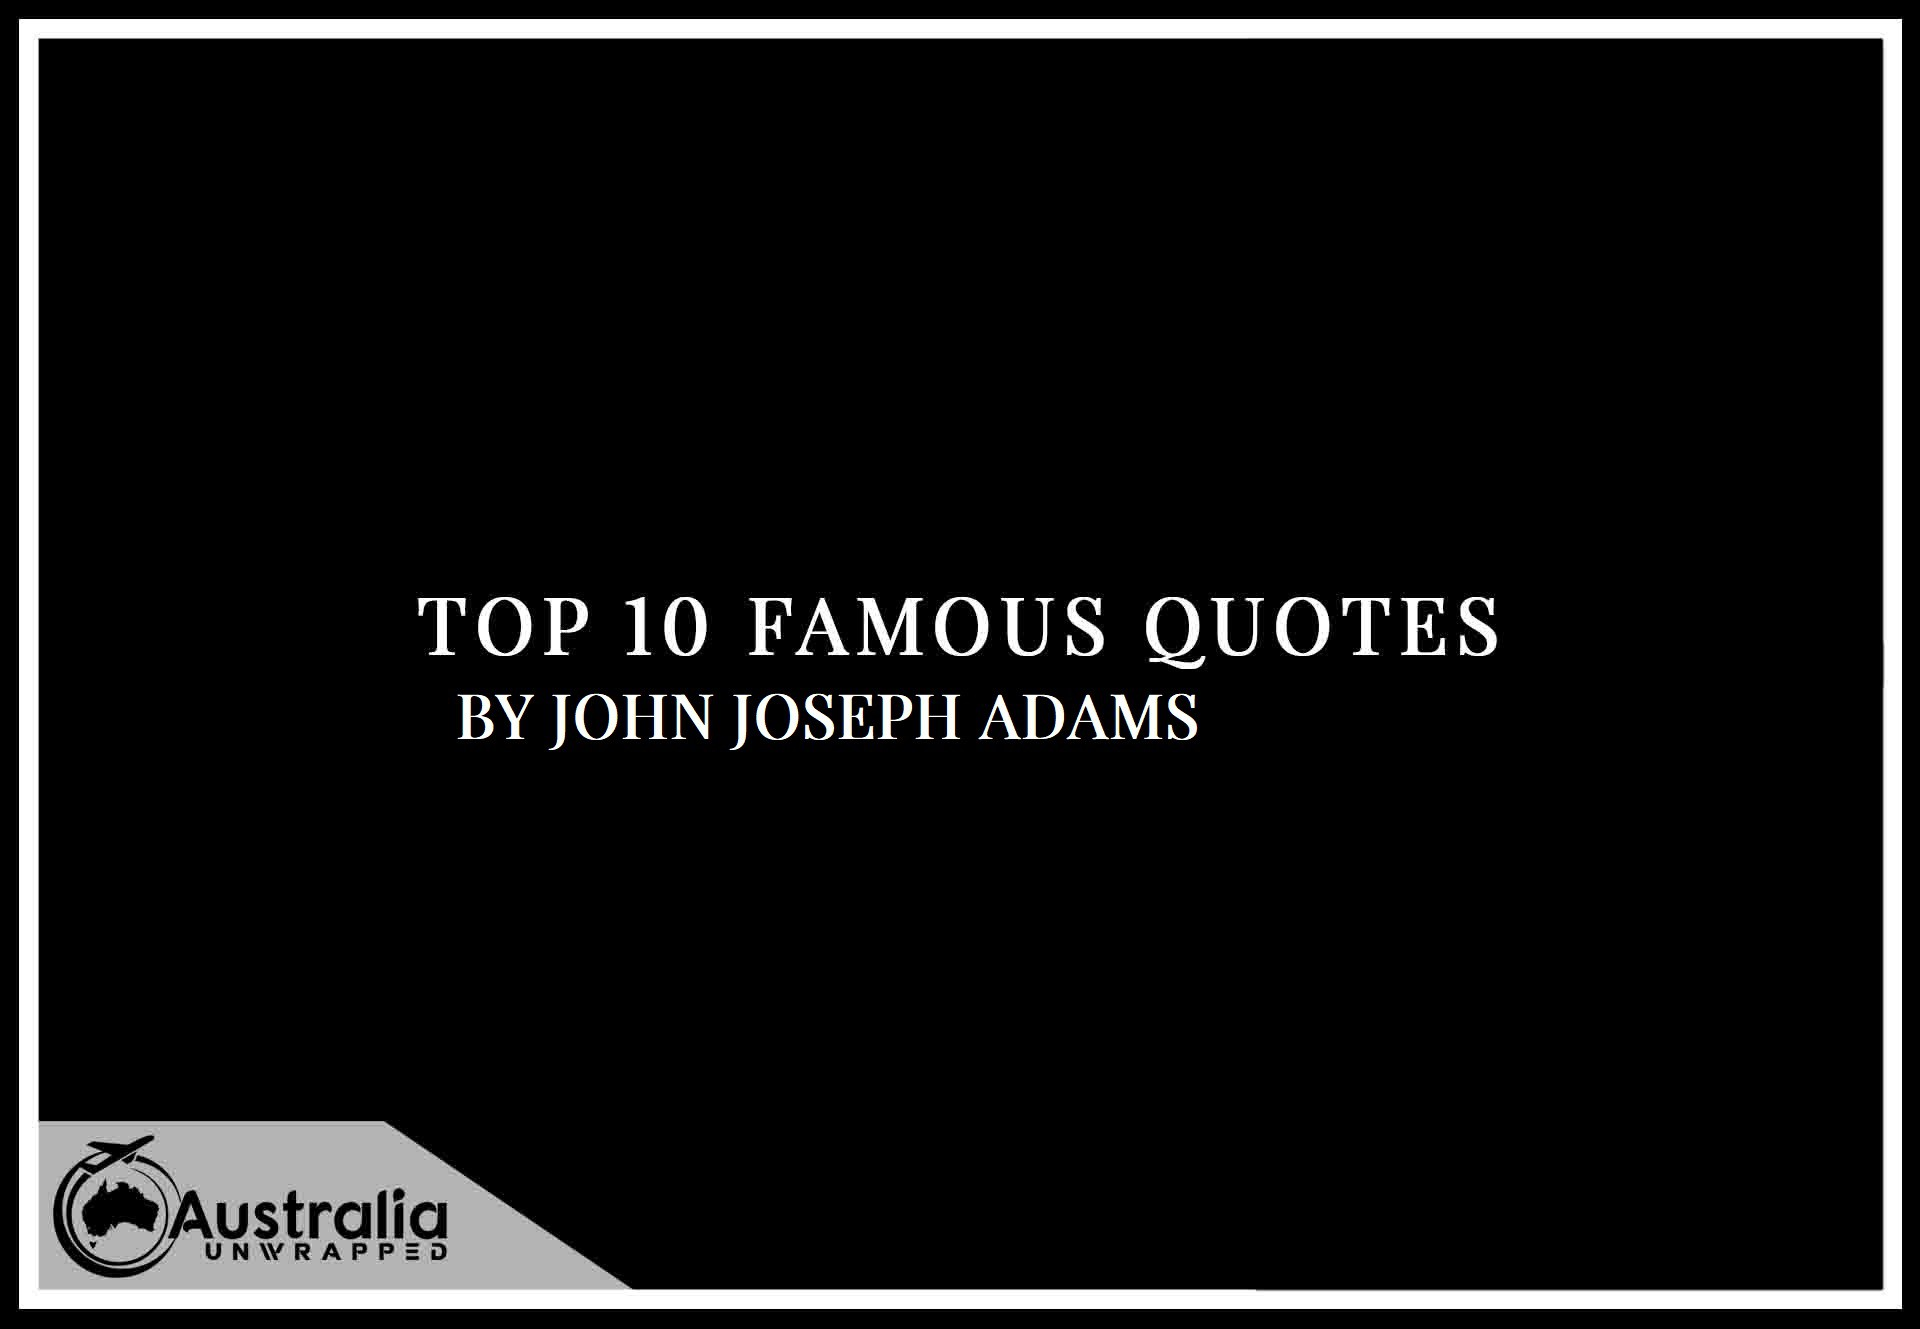 Top 10 Famous Quotes by Author John Joseph Adams